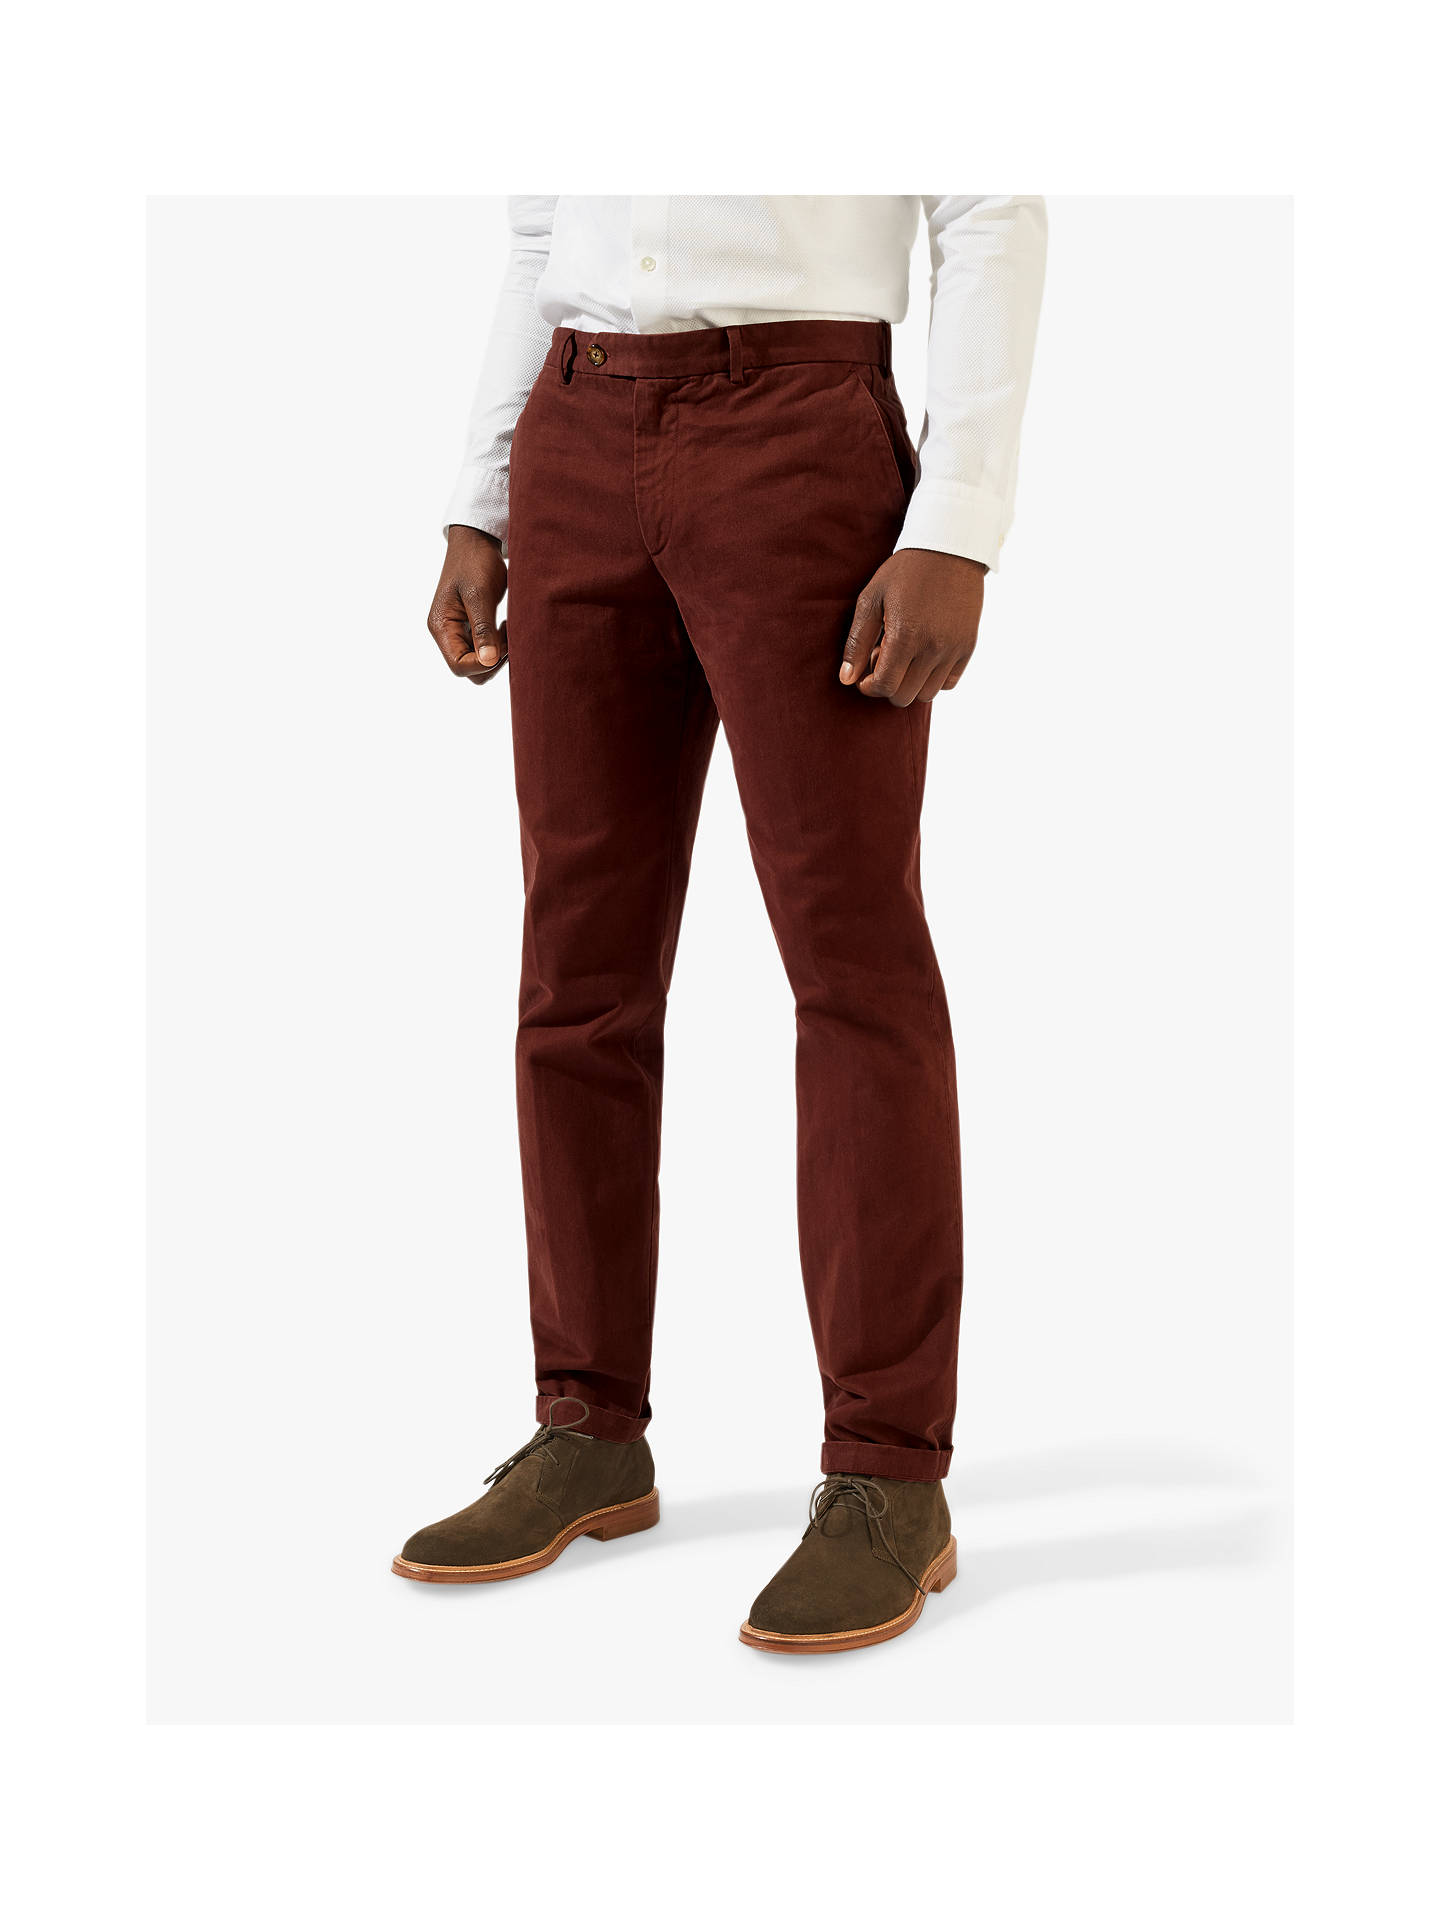 Buy Jigsaw Piper Garment Dye Chinos, Claret, 28R Online at johnlewis.com